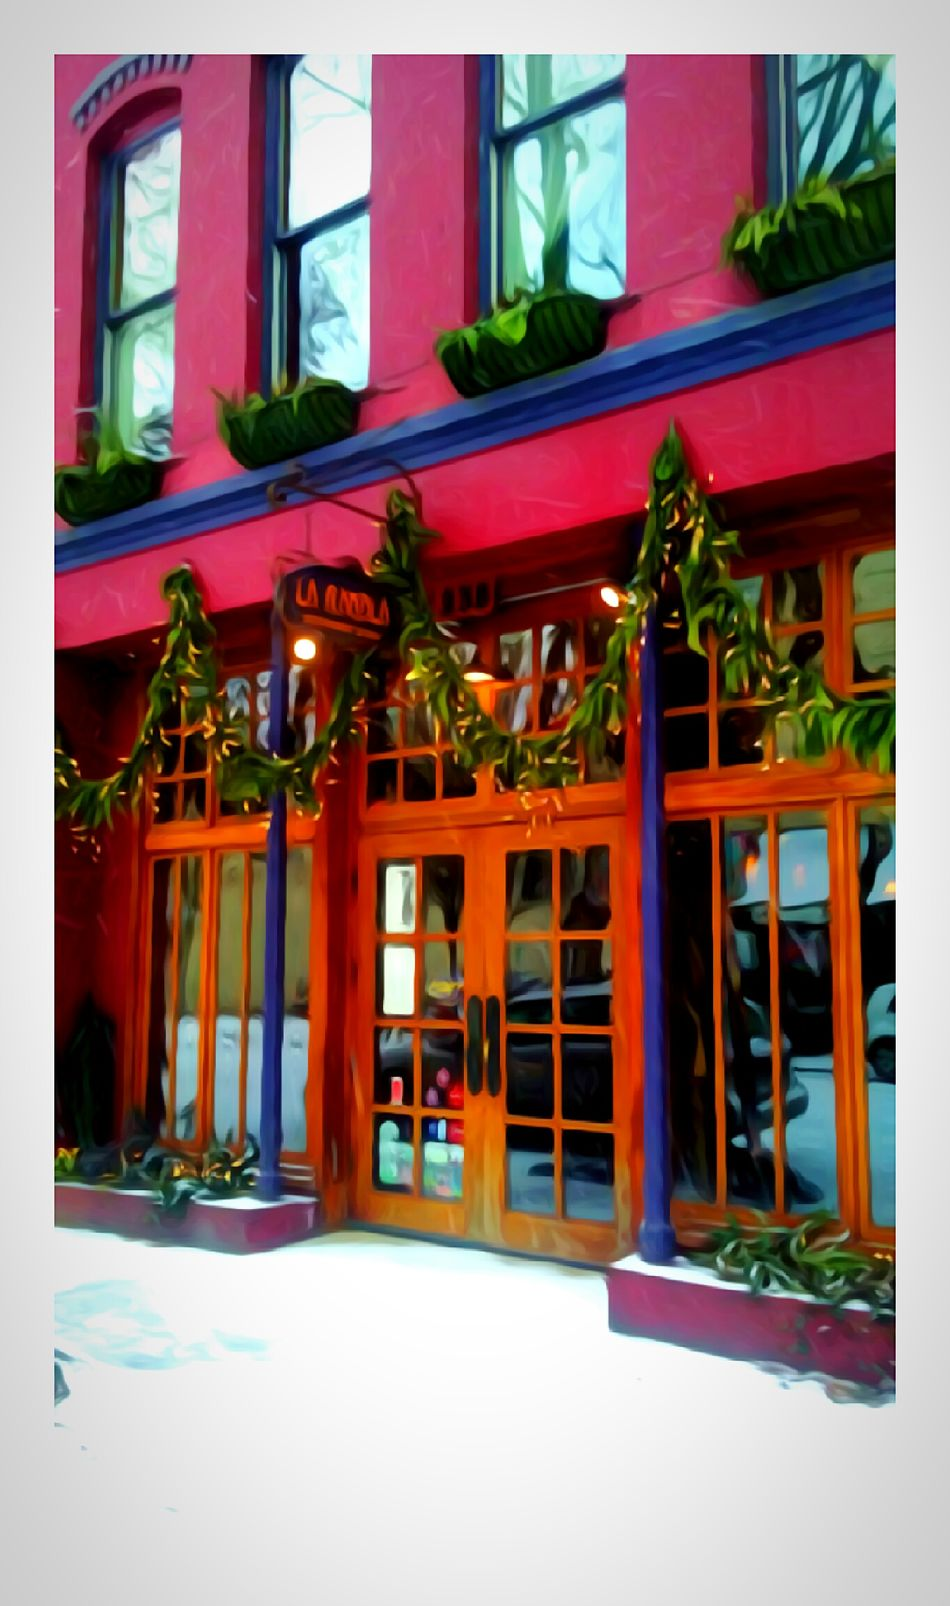 Entrance Architecture Built Structure Tree Inspiration Multi Colored The Way Forward Architecture_collection Downtown McMinnville Fancy Time Architecturephotography Simplicity Here Belongs To Me Oregonexplored Snowing ❄ Portrait Scenics Outdoor Photography Outdoors Where Ever I May Wonder Vibrant Color Focus On Foreground Beautiful ♥ Tranquil Scene 3rd Street Wine Moments